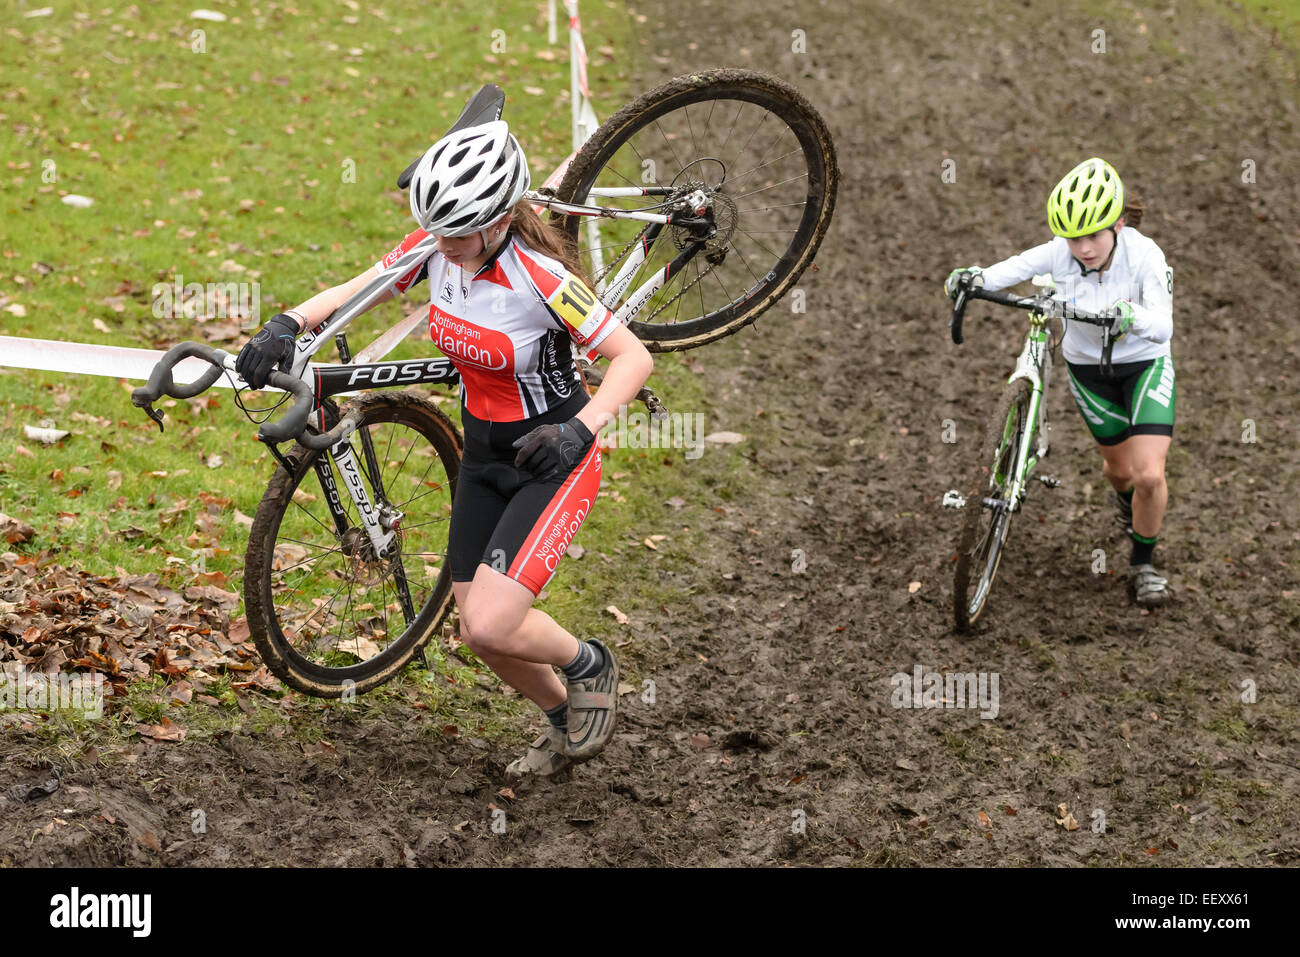 Two young female competitors tackle a steep muddy hill incline at a cyclo-cross cyclocross event. - Stock Image